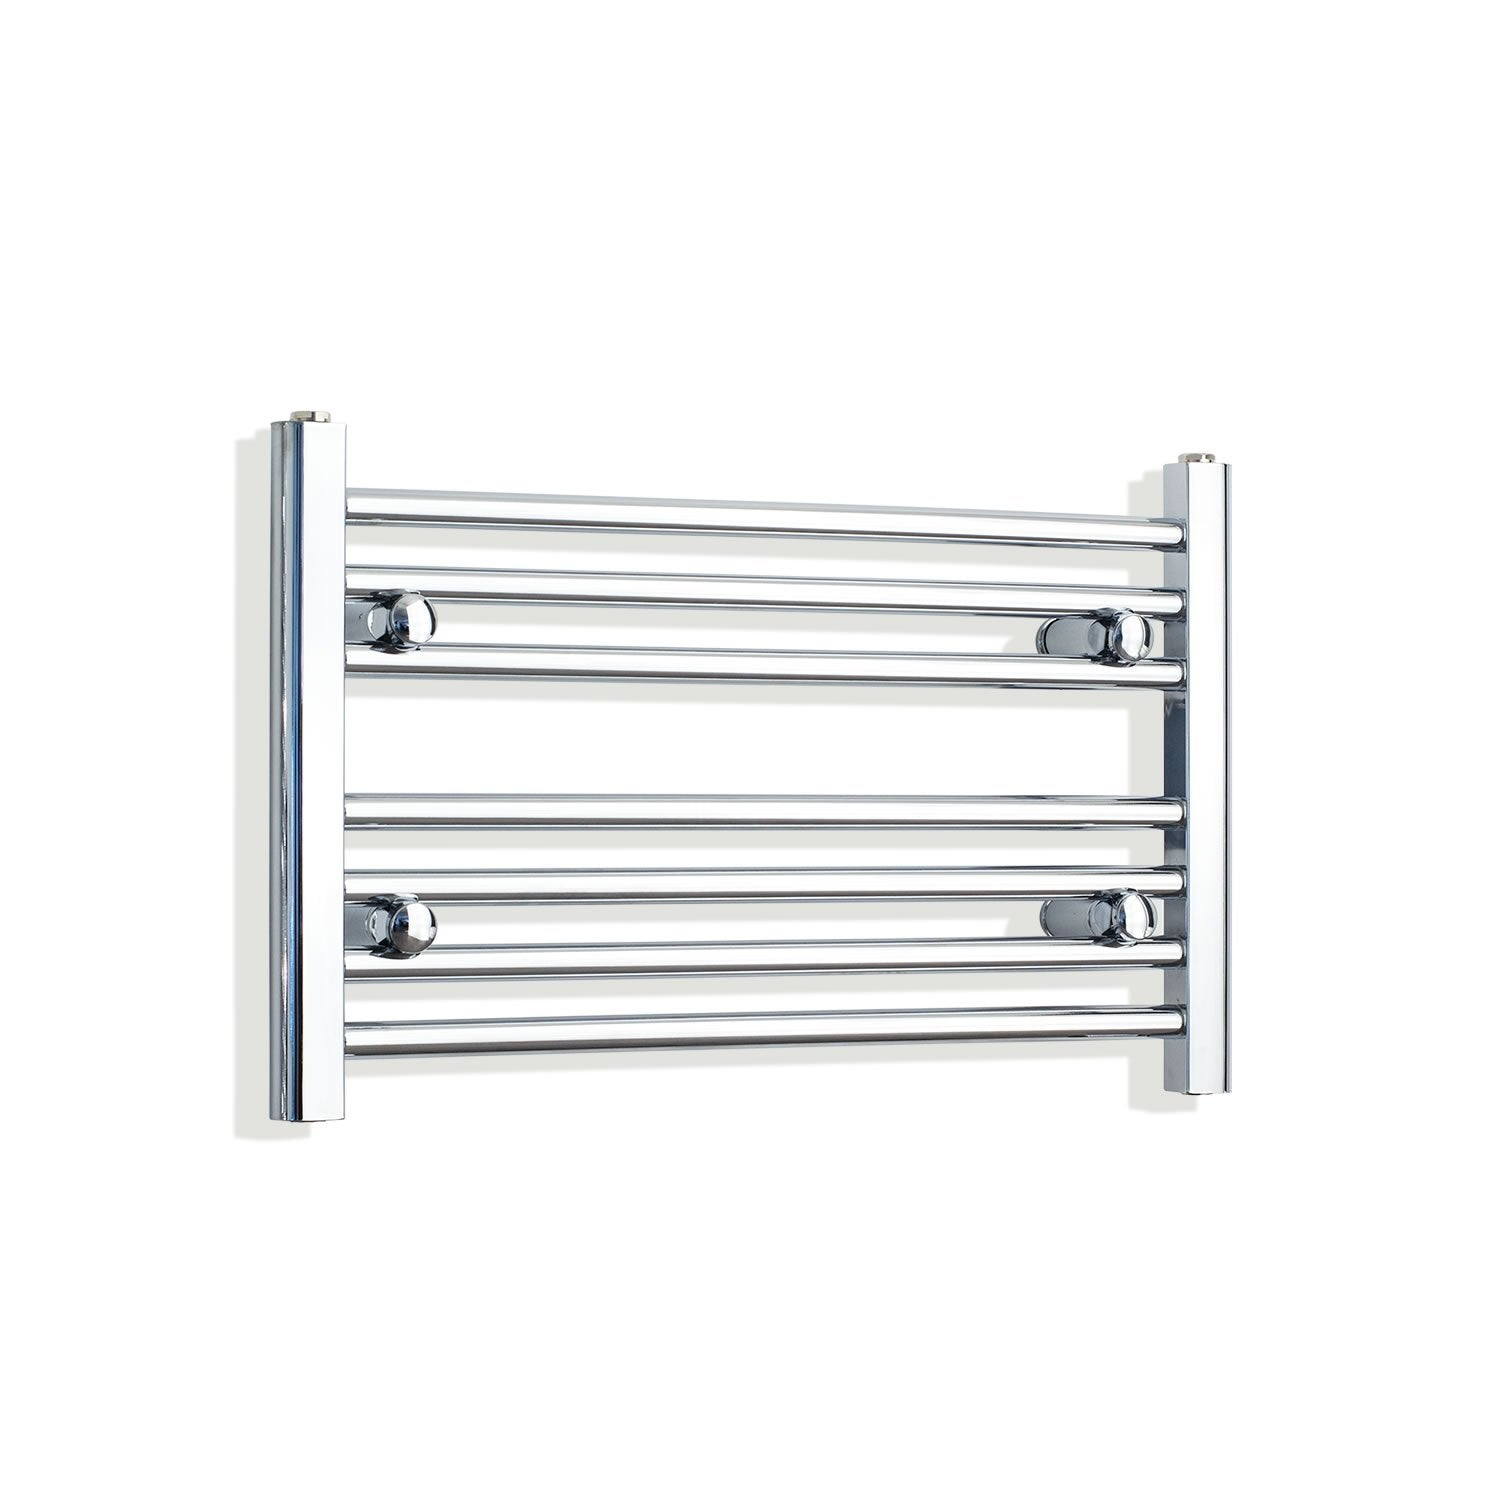 700mm Wide 400mm High Flat Chrome Heated Towel Rail Radiator HTR,Towel Rail Only